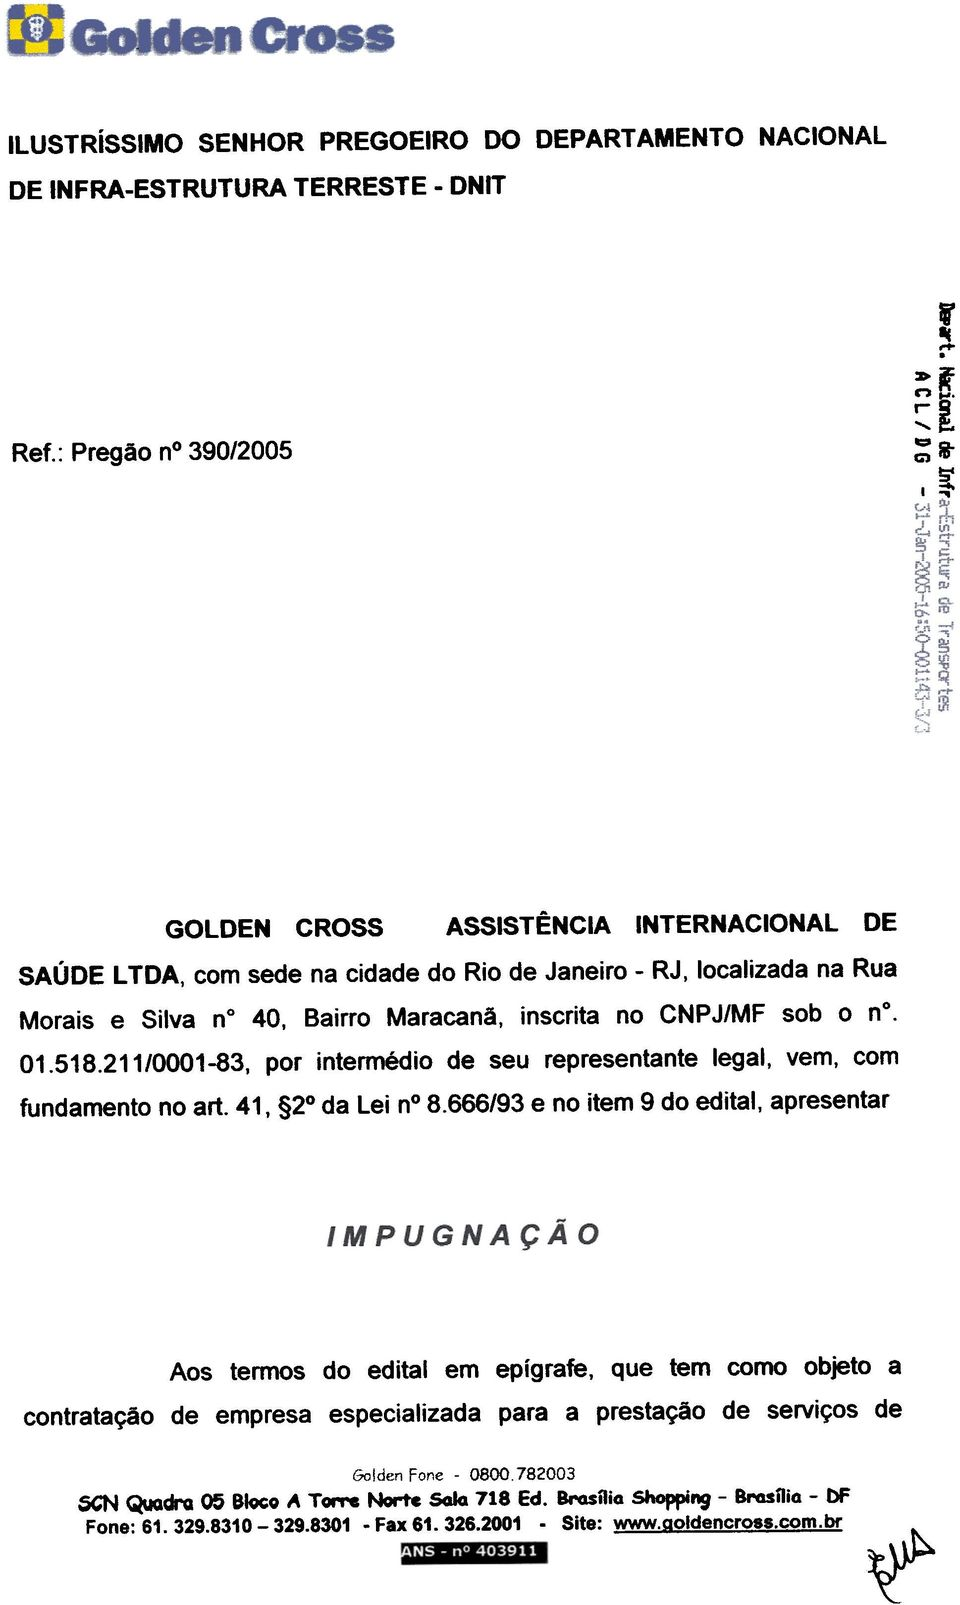 518.211/0001-83, por intermédio de seu representante legal, vem, com fundamento no art. 41, 2 da Lei n 8.